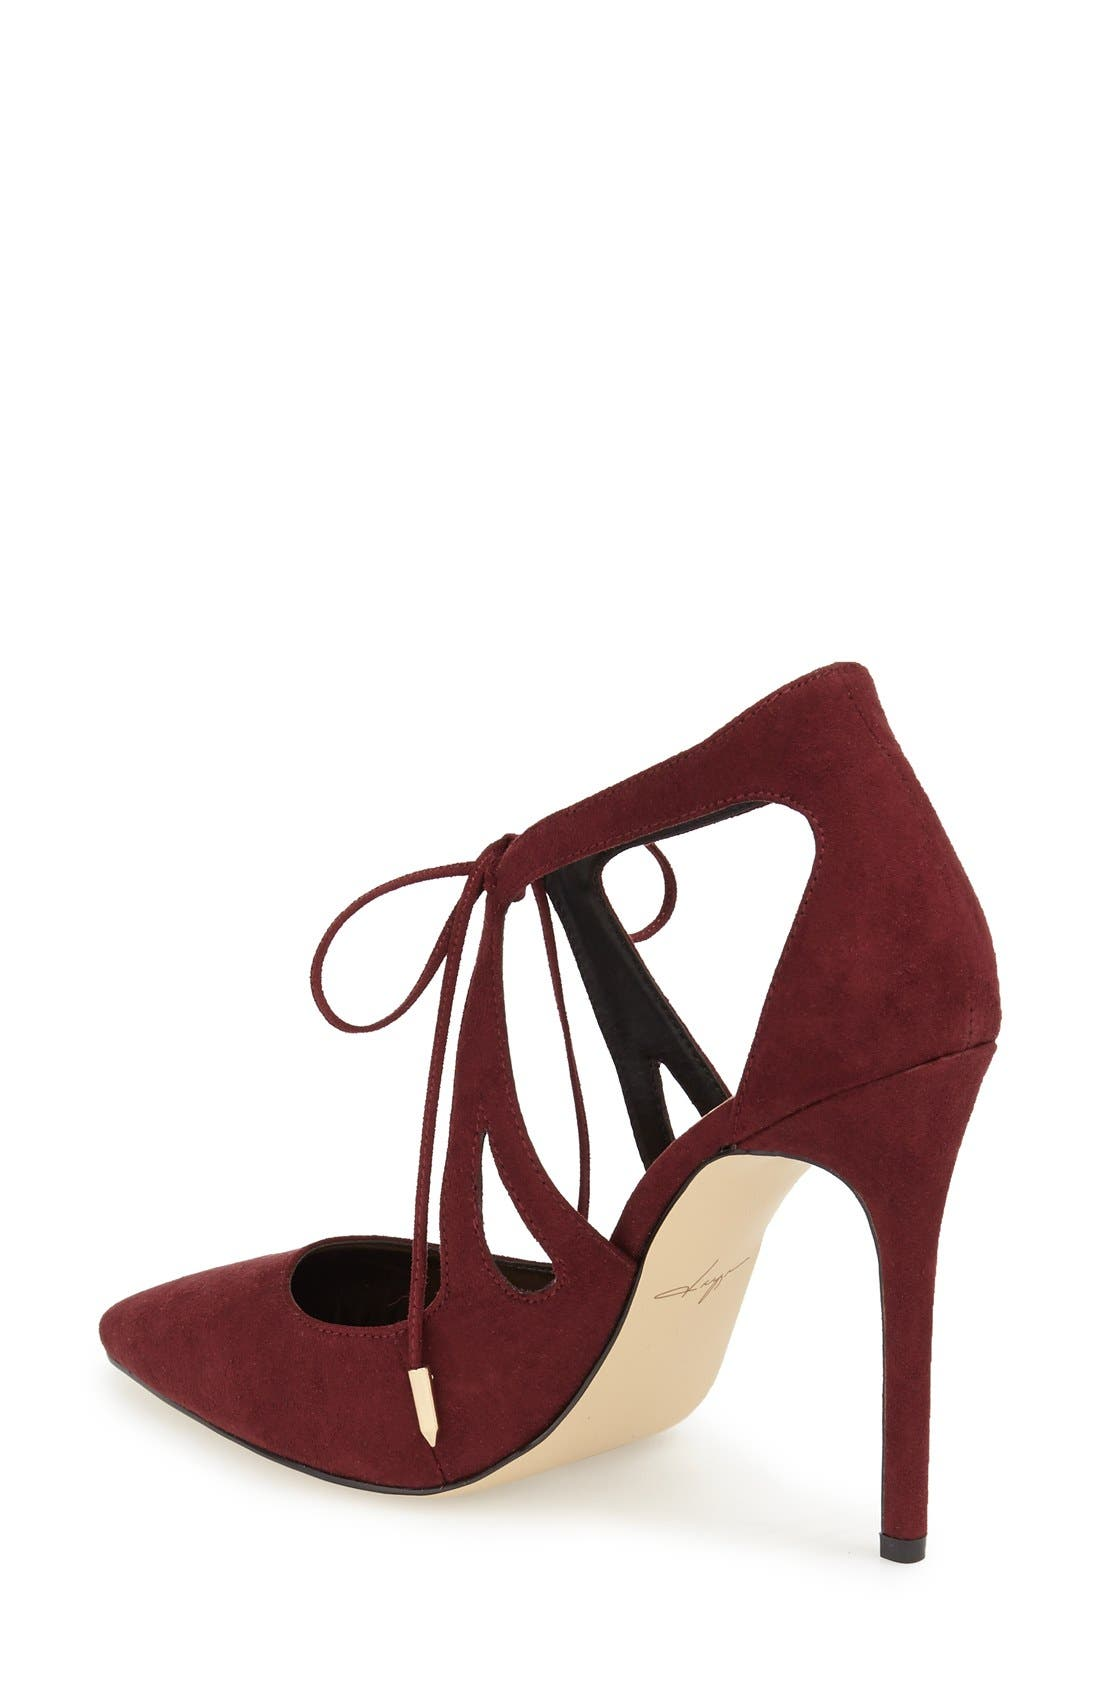 by Zendaya 'Aaron' Pointy Toe Pump,                             Alternate thumbnail 3, color,                             939